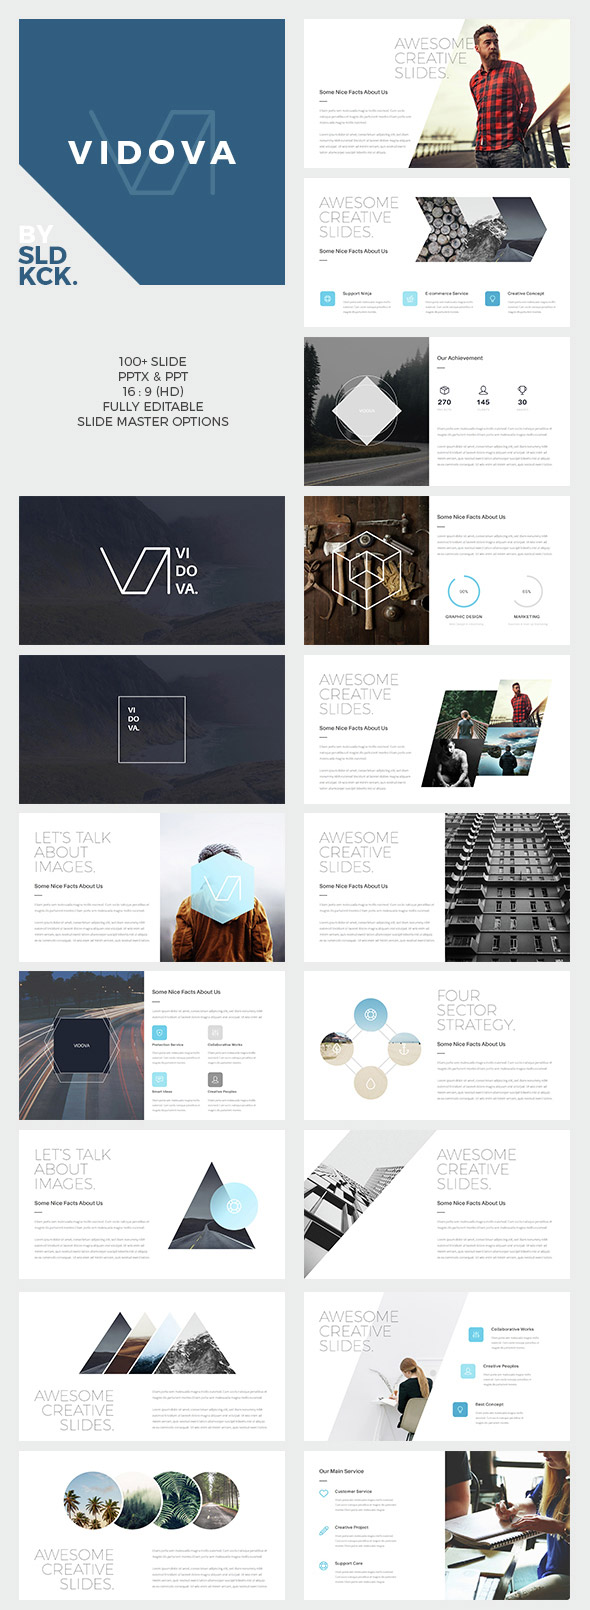 20 ppt templates for simple modern powerpoint presentations vidova modern ppt presentation template design toneelgroepblik Image collections